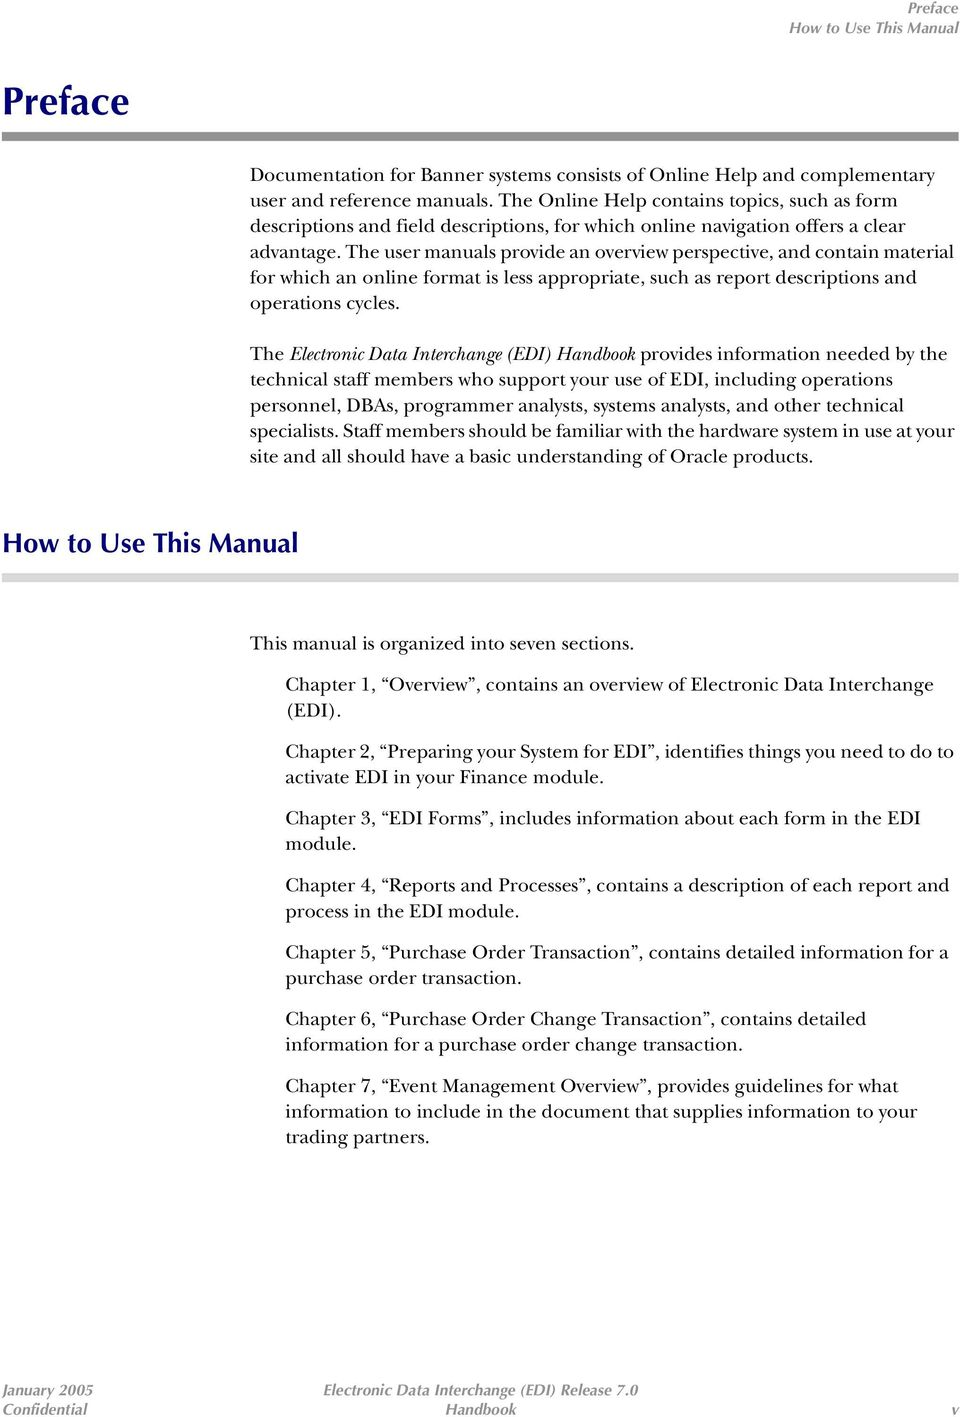 The user manuals provide an overview perspective, and contain material for which an online format is less appropriate, such as report descriptions and operations cycles.